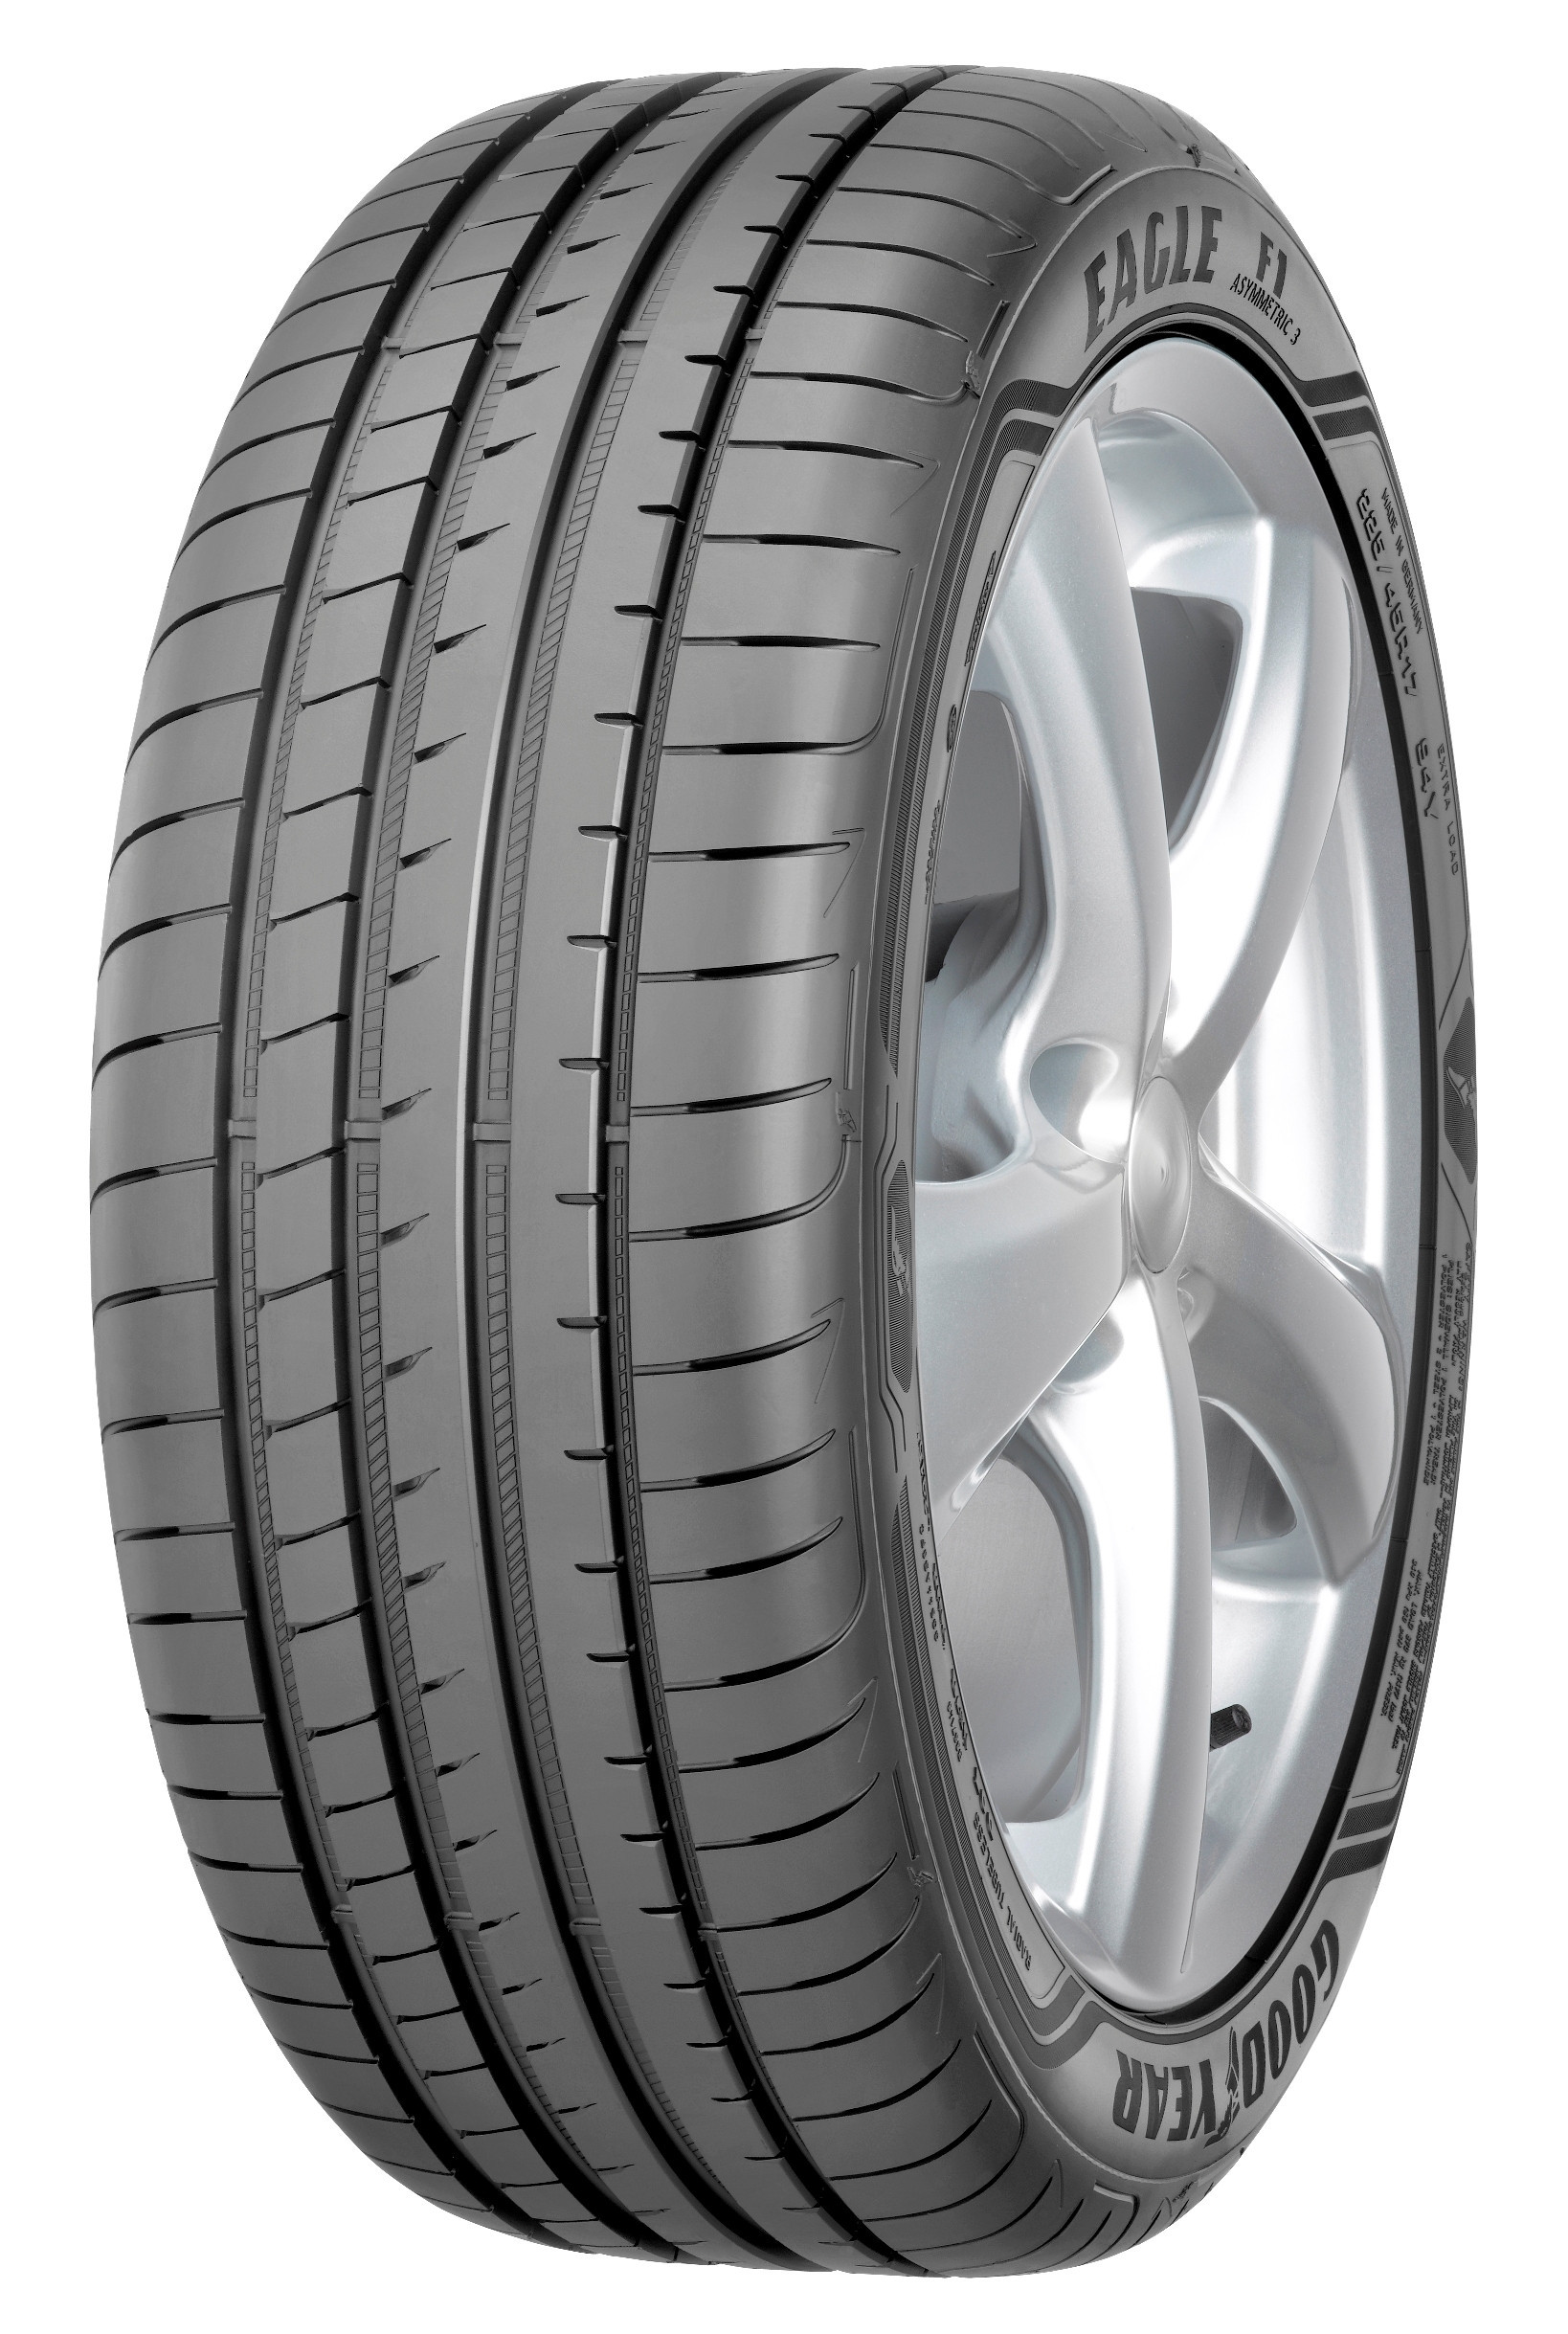 Anvelopa Vara 225/45R17 94Y Goodyear Eagle F1 Asymmetric 3 Xl